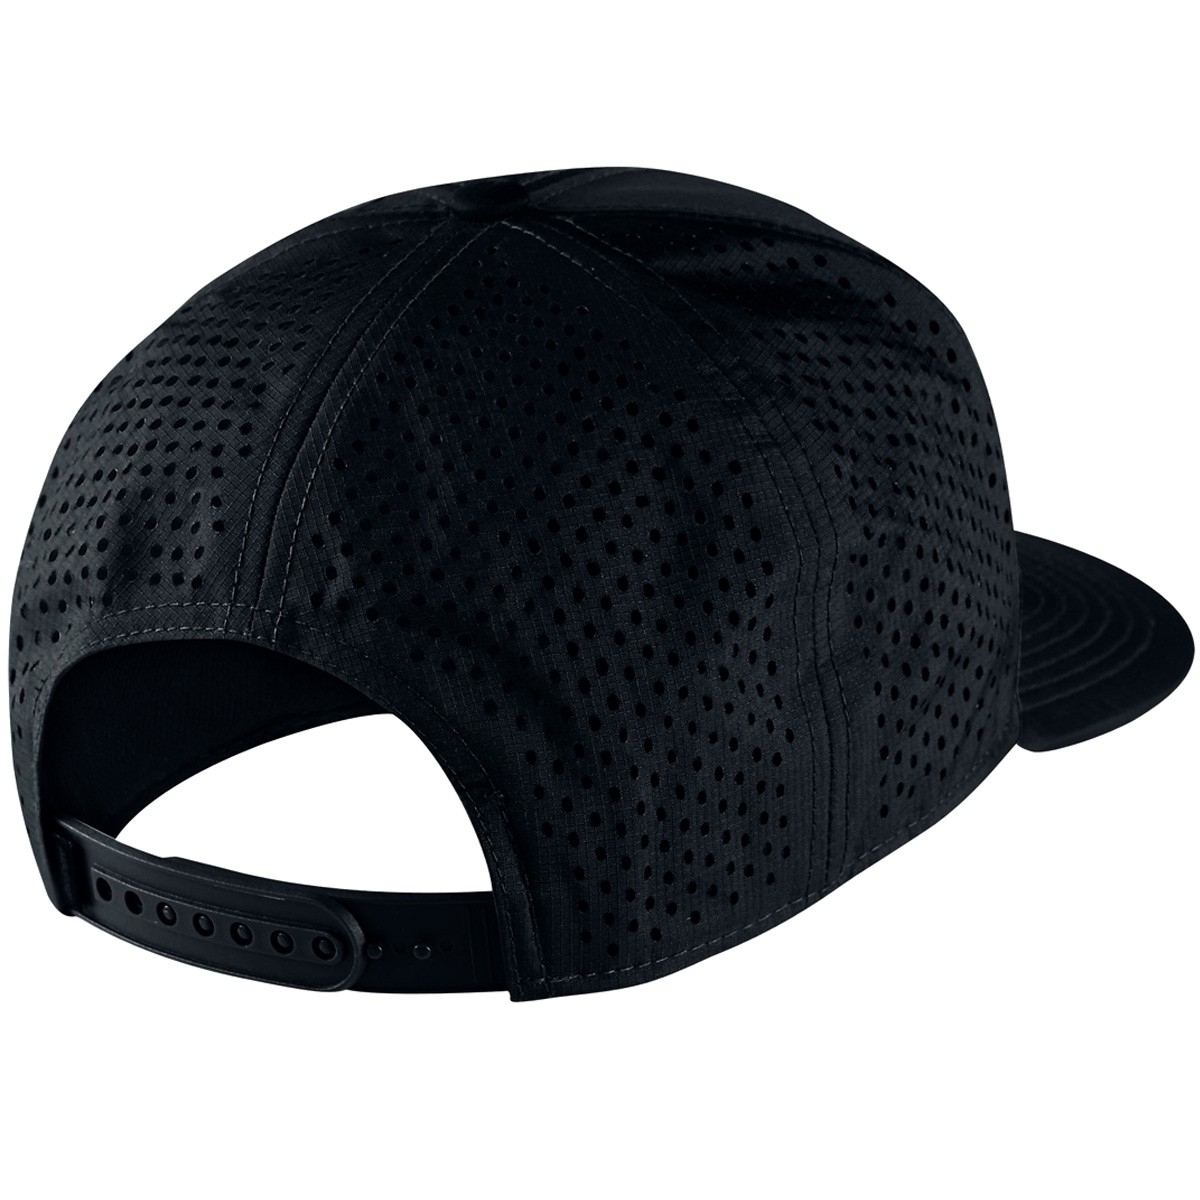 6d7321aef8a Nike SB Performance Trucker Hat - Black Black Black White